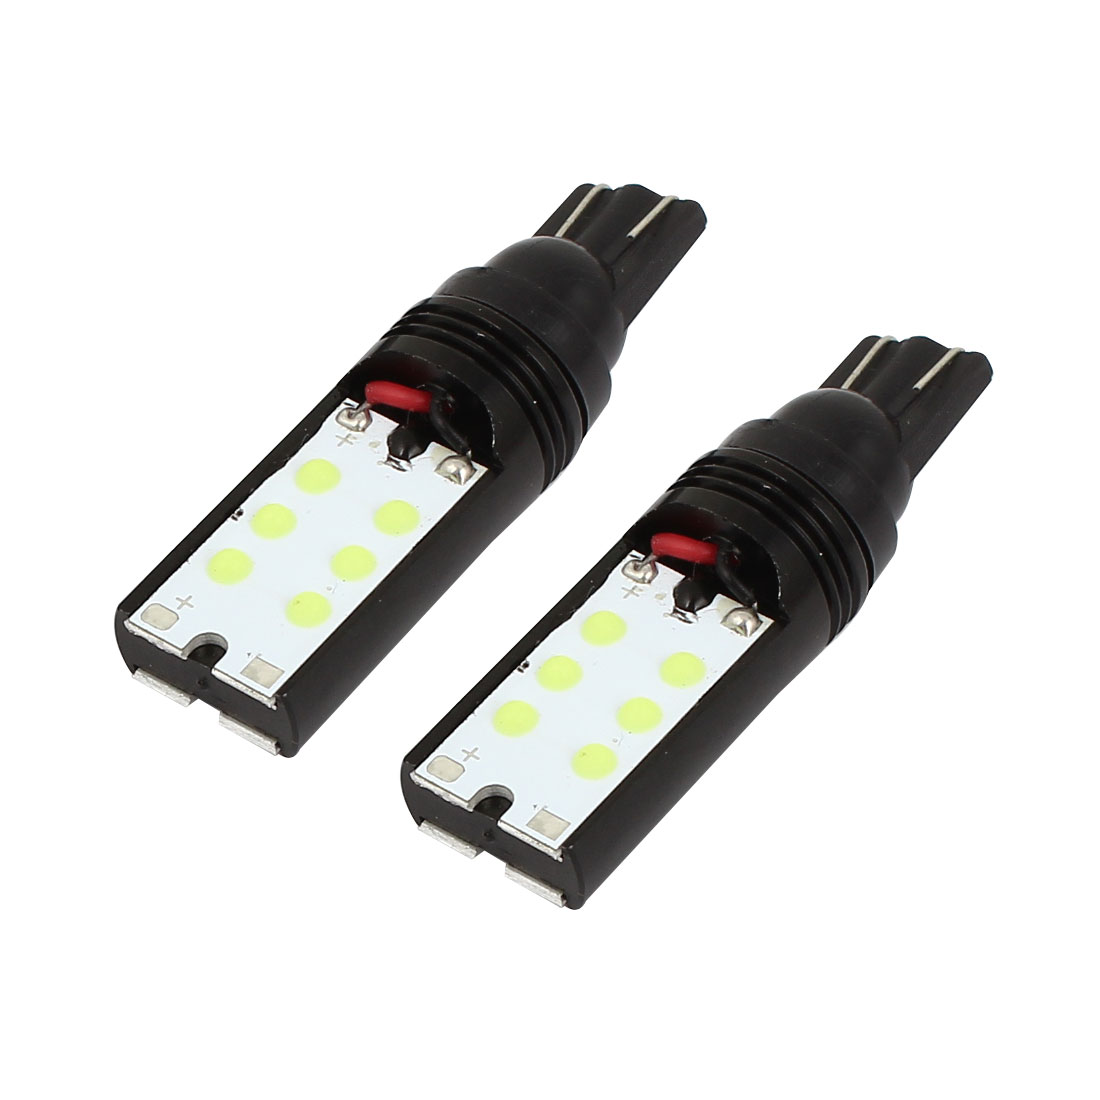 Unique Bargains 2 Pcs White T10 Wedge 12 SMD LED Bulb Bulbs Car Tail light Internal